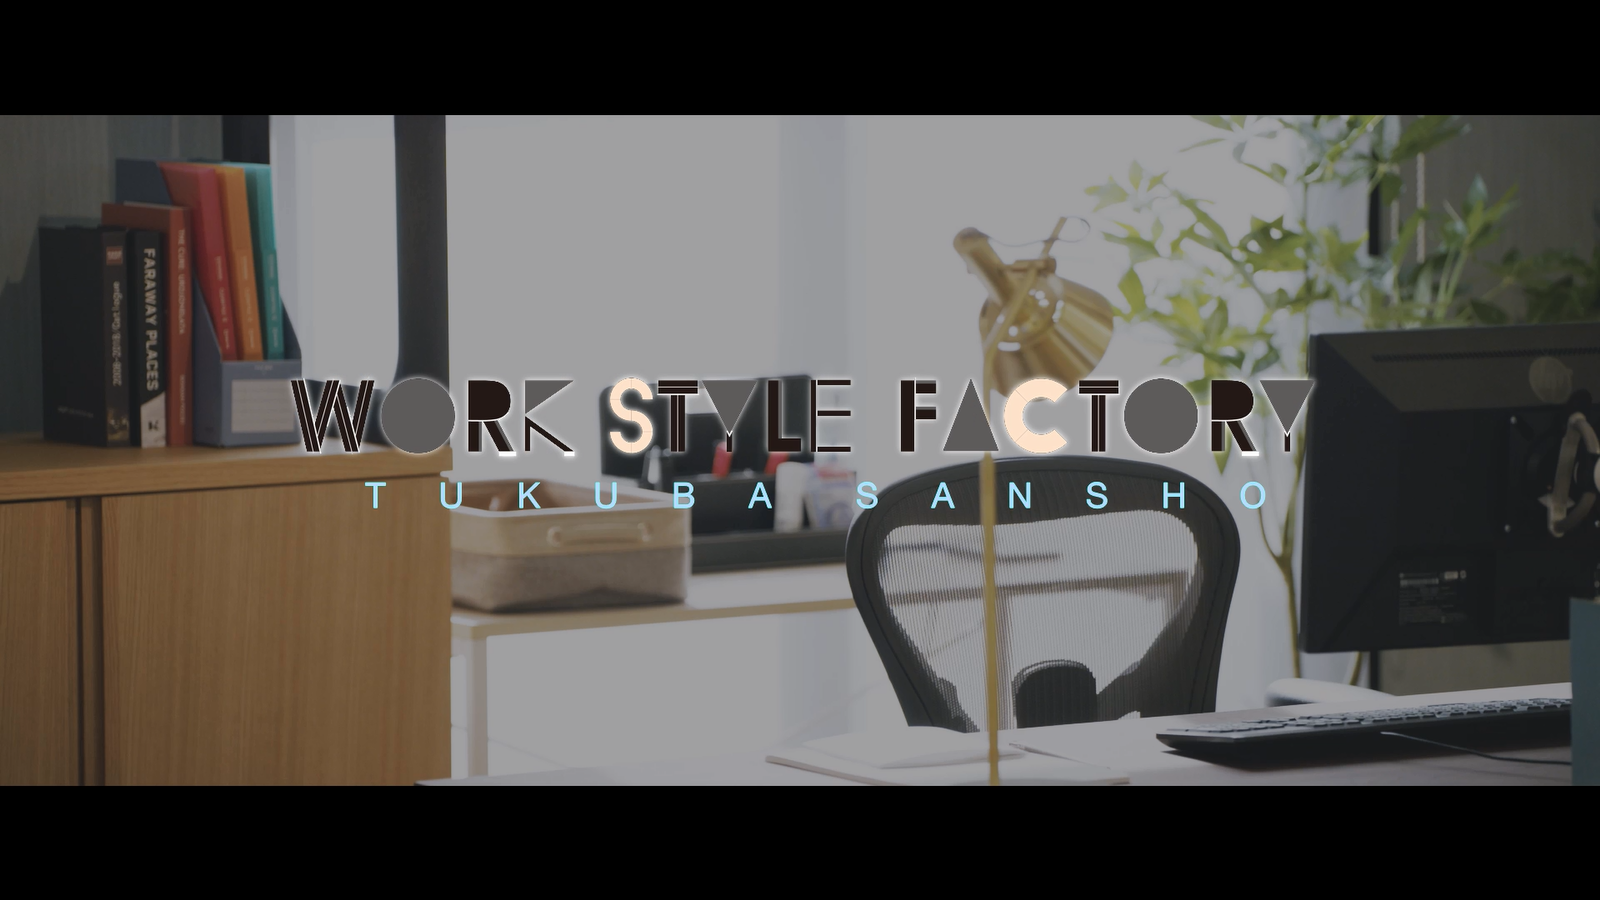 WORK STYLE FACTORY